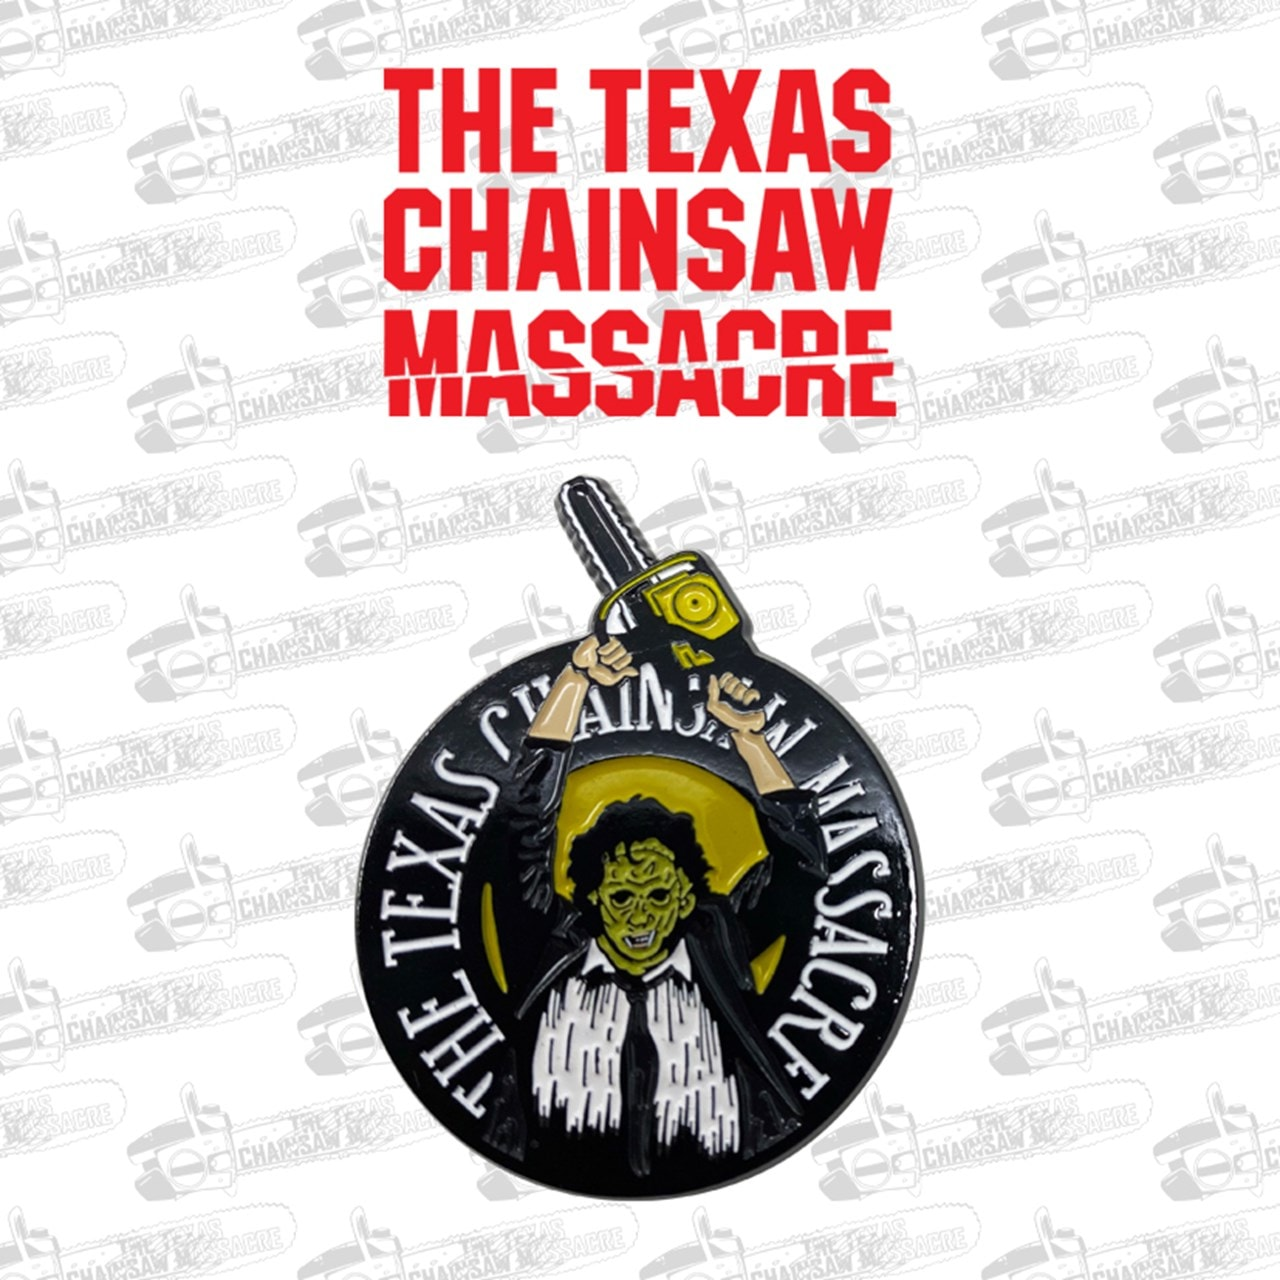 Texas Chainsaw Massacre: Limited Edition Pin Badge - 2